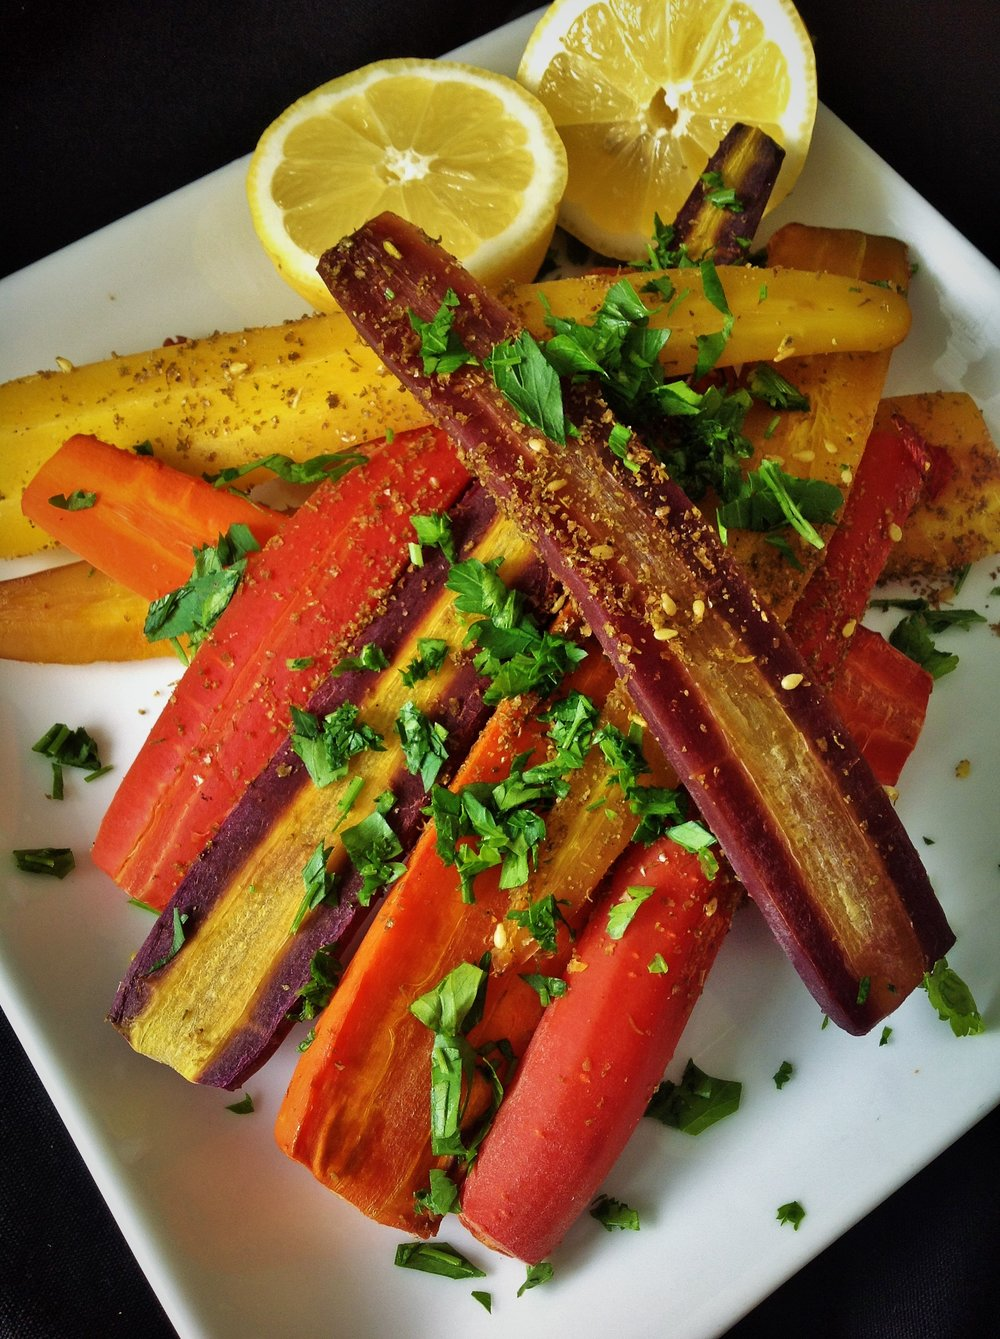 Zatar Spiced Rainbow Carrots - Healthy, Gluten-Free, Oil-Free, Plant-Based, Paleo, Vegan